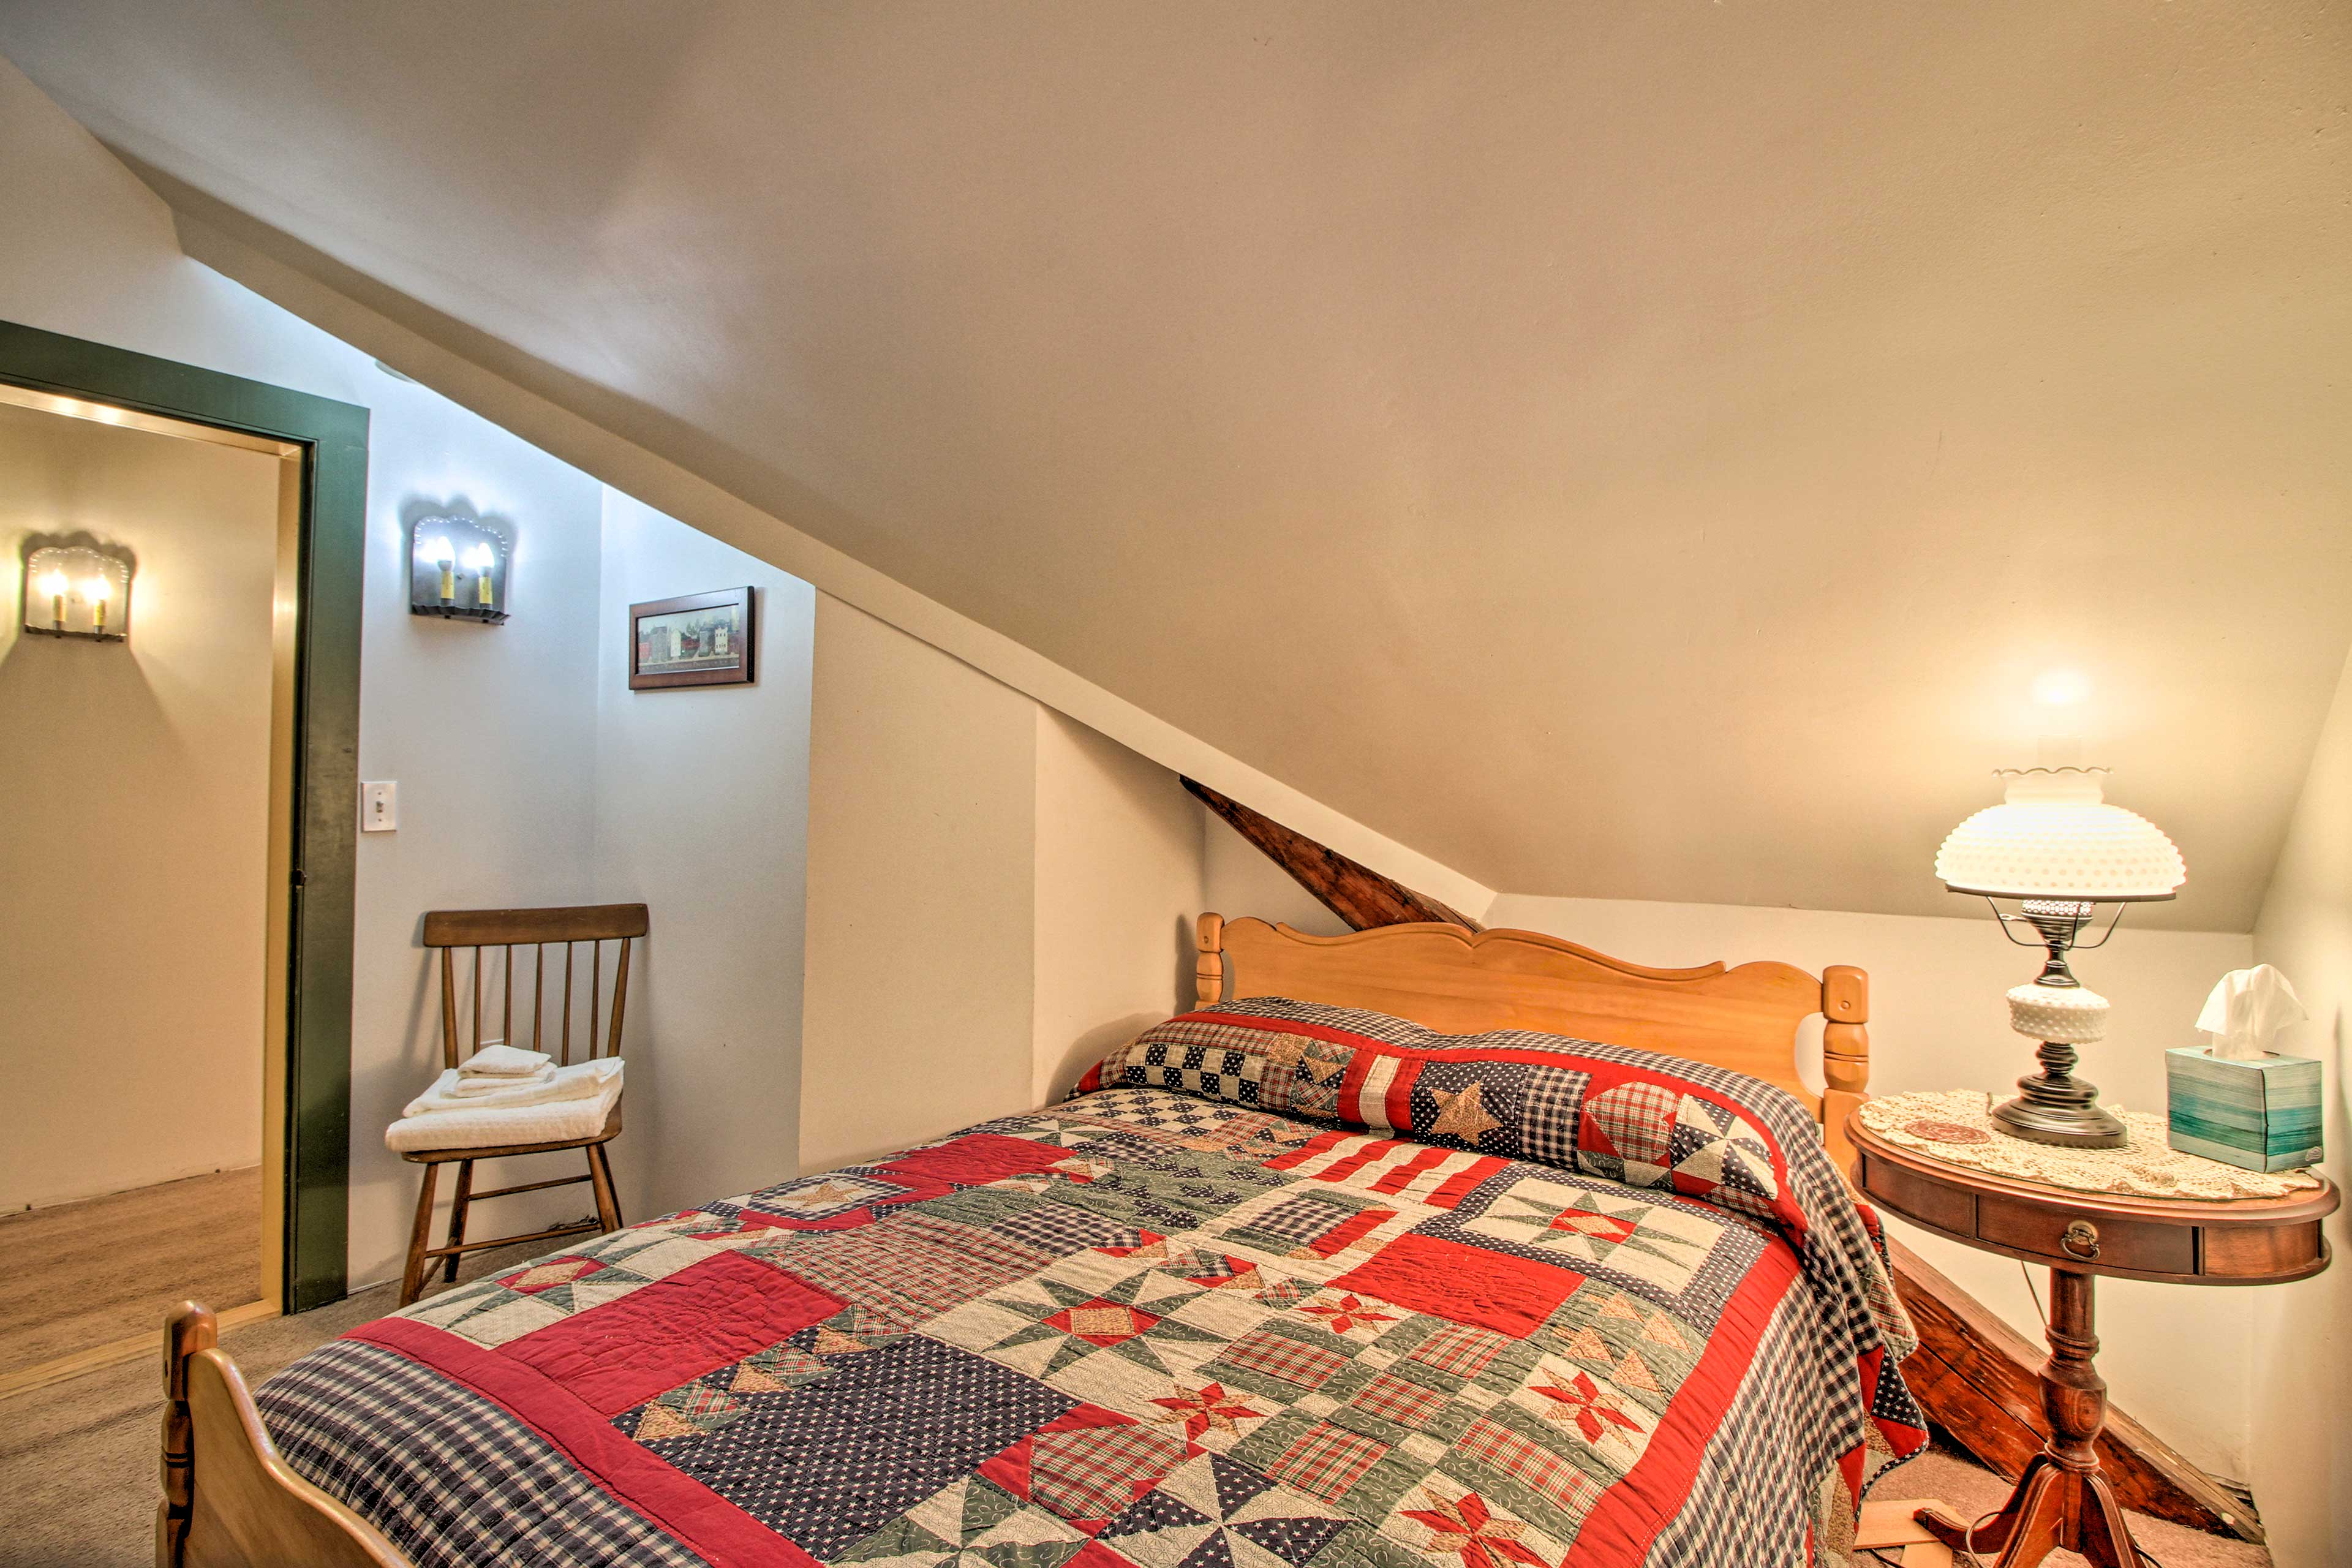 Cozy up in this full bed for a good night's rest.